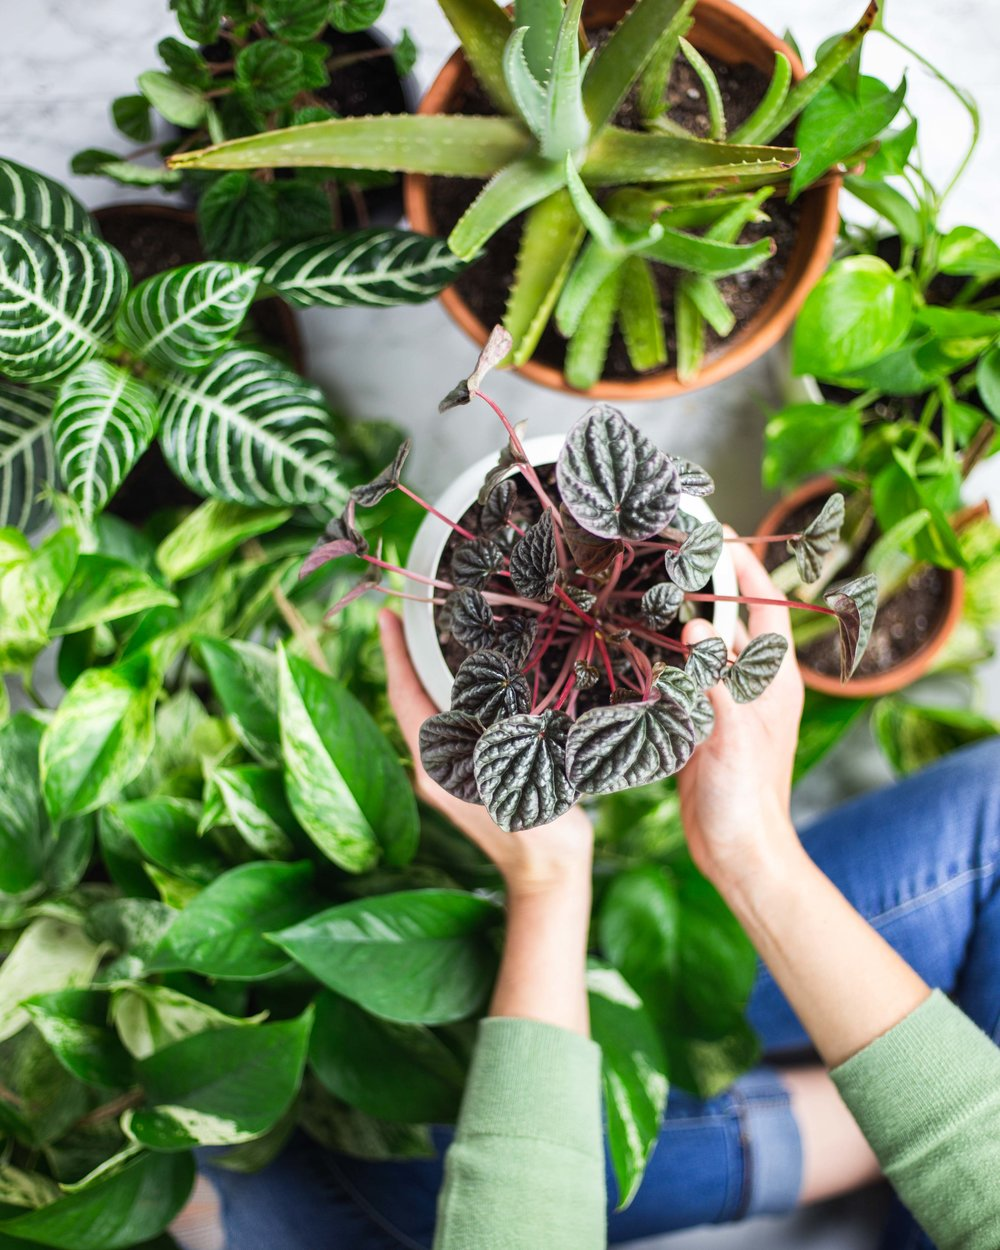 Houseplants for Better Health | Health Benefits of Houseplants + 5 Houseplants to Purify Air